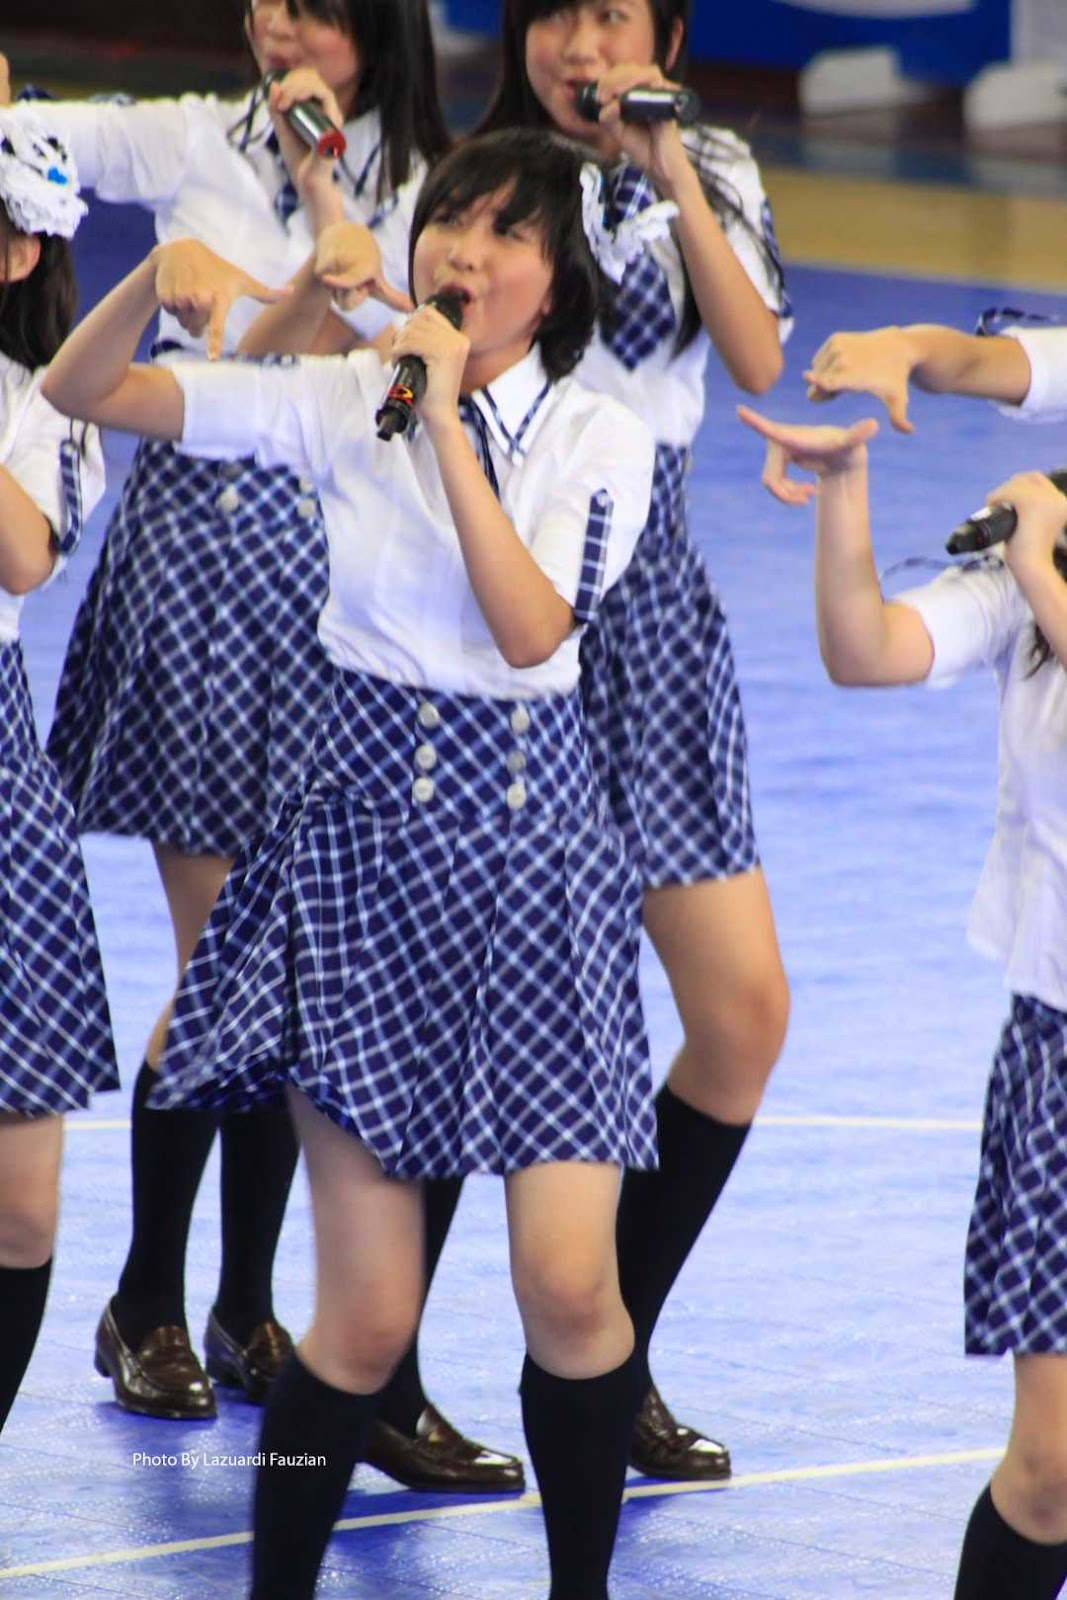 Ghaida JKT48 perform at pocary sweat futsal